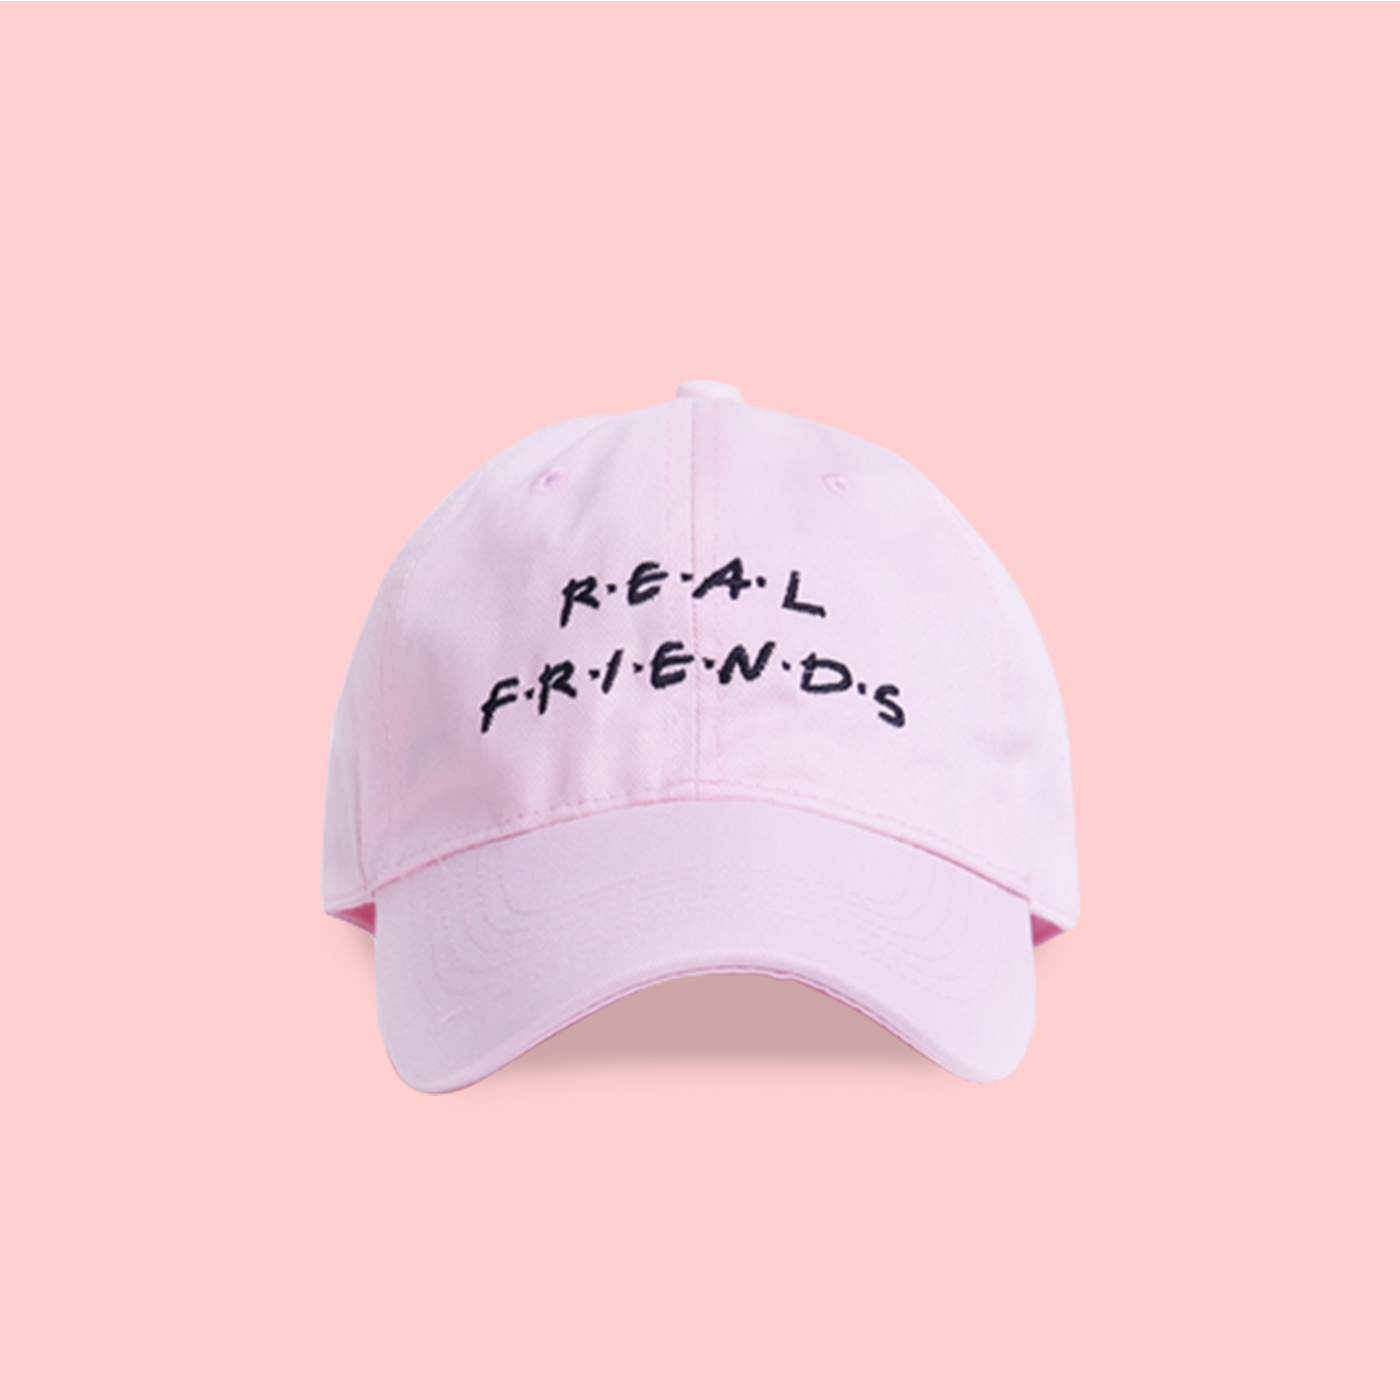 ad01e3e2bcb UNISEX REAL FRIENDS BASEBALL CAP IN PINK · soldrelax · Online Store ...